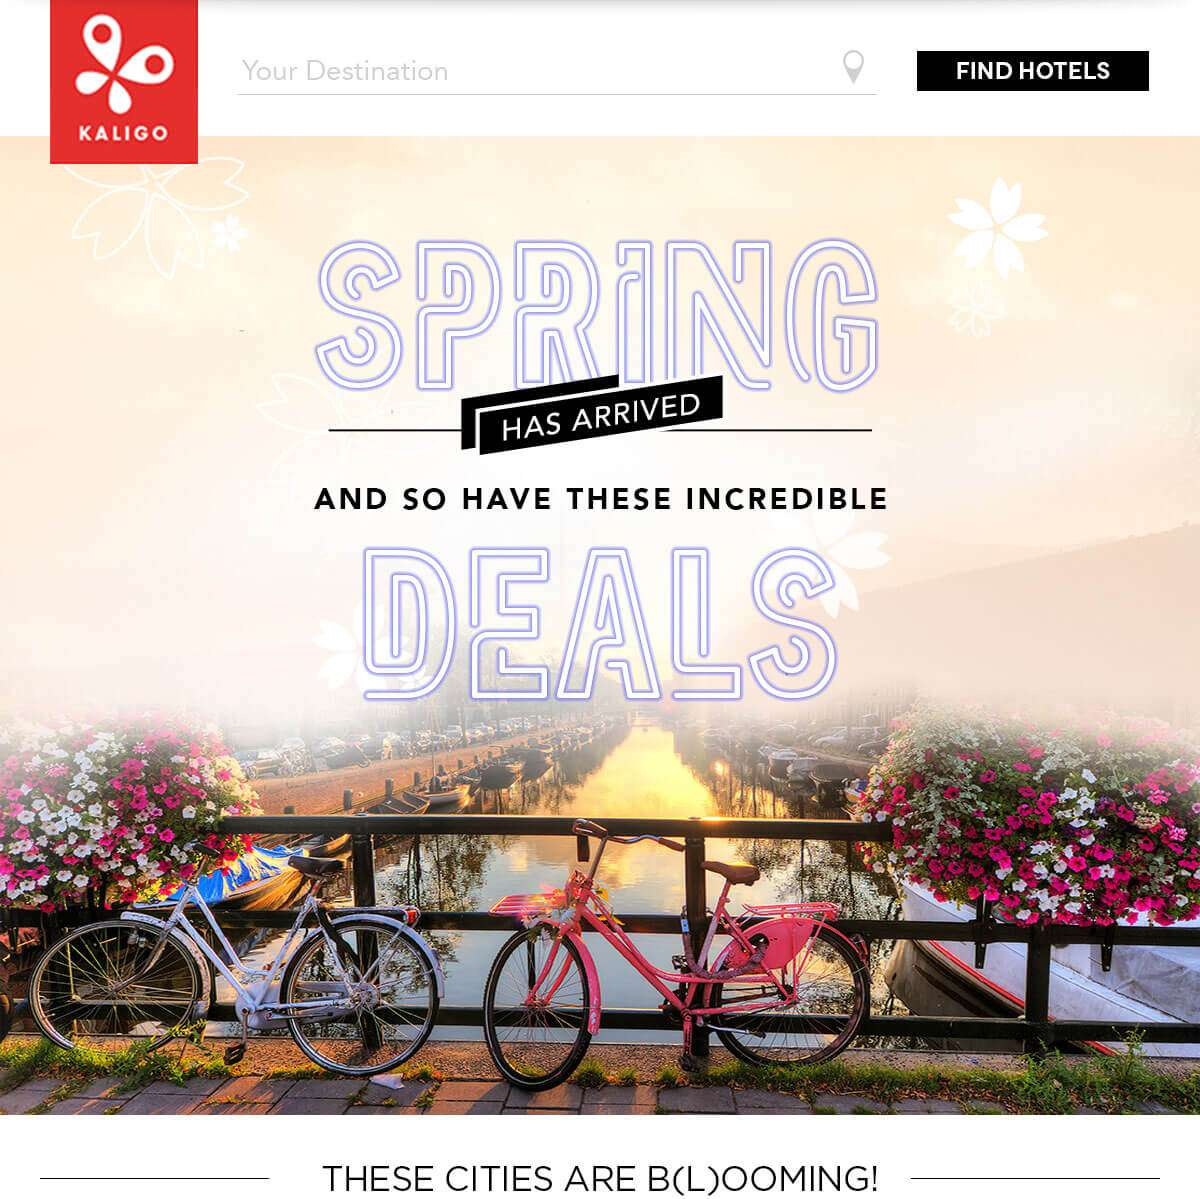 Spring has arrived, and so have these incredible deals!